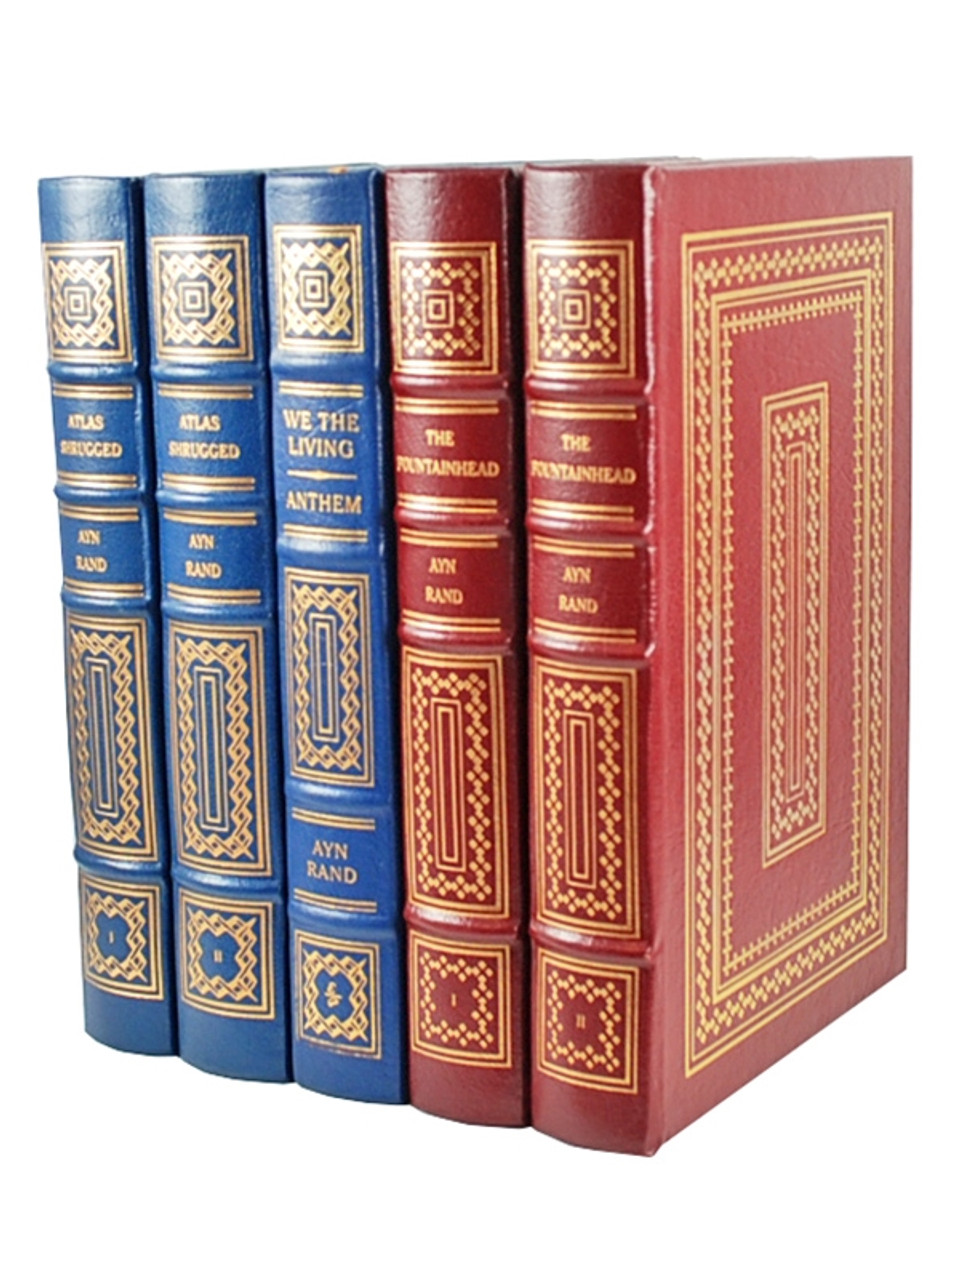 Easton Press, The Collected Works of Ayn Rand, Limited Leather Bound Collector's Edition, 5 Vol. Set